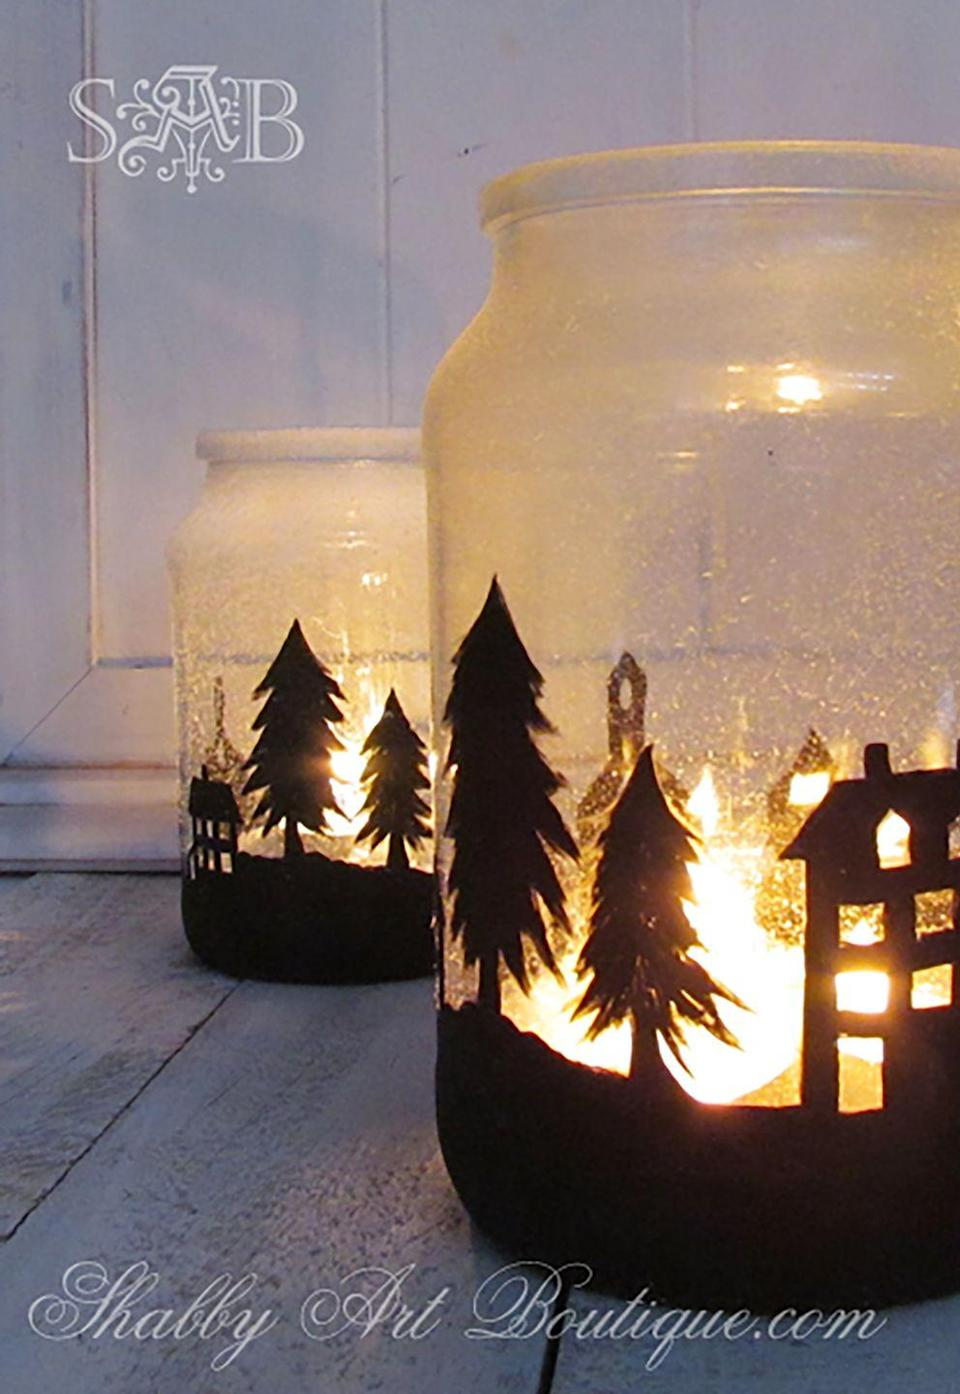 """<p>Blogger Kerryanne English set a snowy scene in her home by illuminating a stencil she glued to the outside of jar lit up with a tea light candle.</p><p><strong>Get the tutorial at <a href=""""http://shabbyartboutique.com/2014/11/its-no-secret-women-love-candles.html"""" rel=""""nofollow noopener"""" target=""""_blank"""" data-ylk=""""slk:Shabby Art Boutique"""" class=""""link rapid-noclick-resp"""">Shabby Art Boutique</a>.</strong> </p><p><a class=""""link rapid-noclick-resp"""" href=""""https://www.amazon.com/Apple-Barrel-Acrylic-Assorted-21148/dp/B0018NBUU2/?tag=syn-yahoo-20&ascsubtag=%5Bartid%7C10050.g.2132%5Bsrc%7Cyahoo-us"""" rel=""""nofollow noopener"""" target=""""_blank"""" data-ylk=""""slk:SHOP BLACK PAINT"""">SHOP BLACK PAINT</a></p>"""